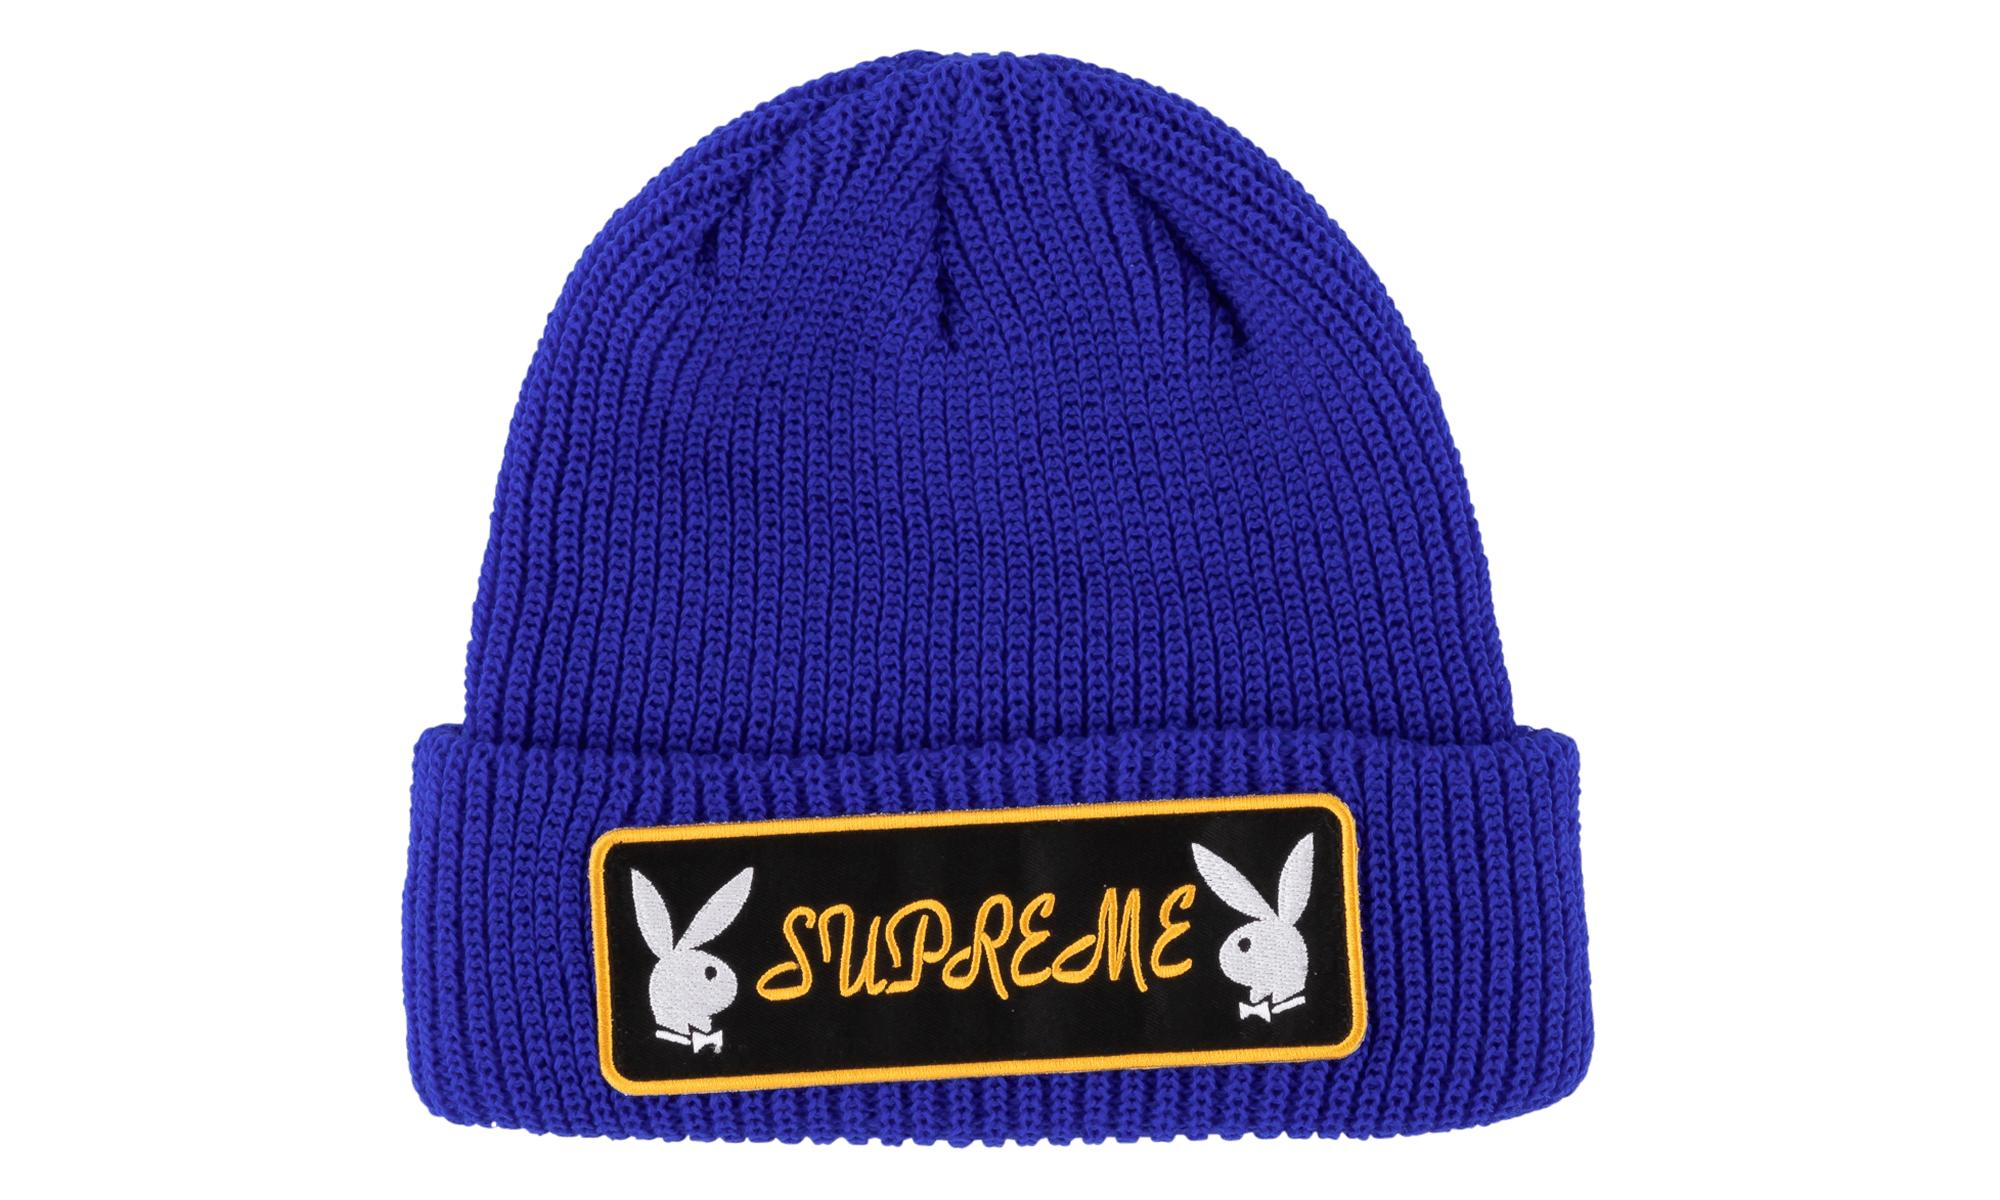 57727b090 Lyst - Supreme Playboy Patch Beanie in Blue for Men